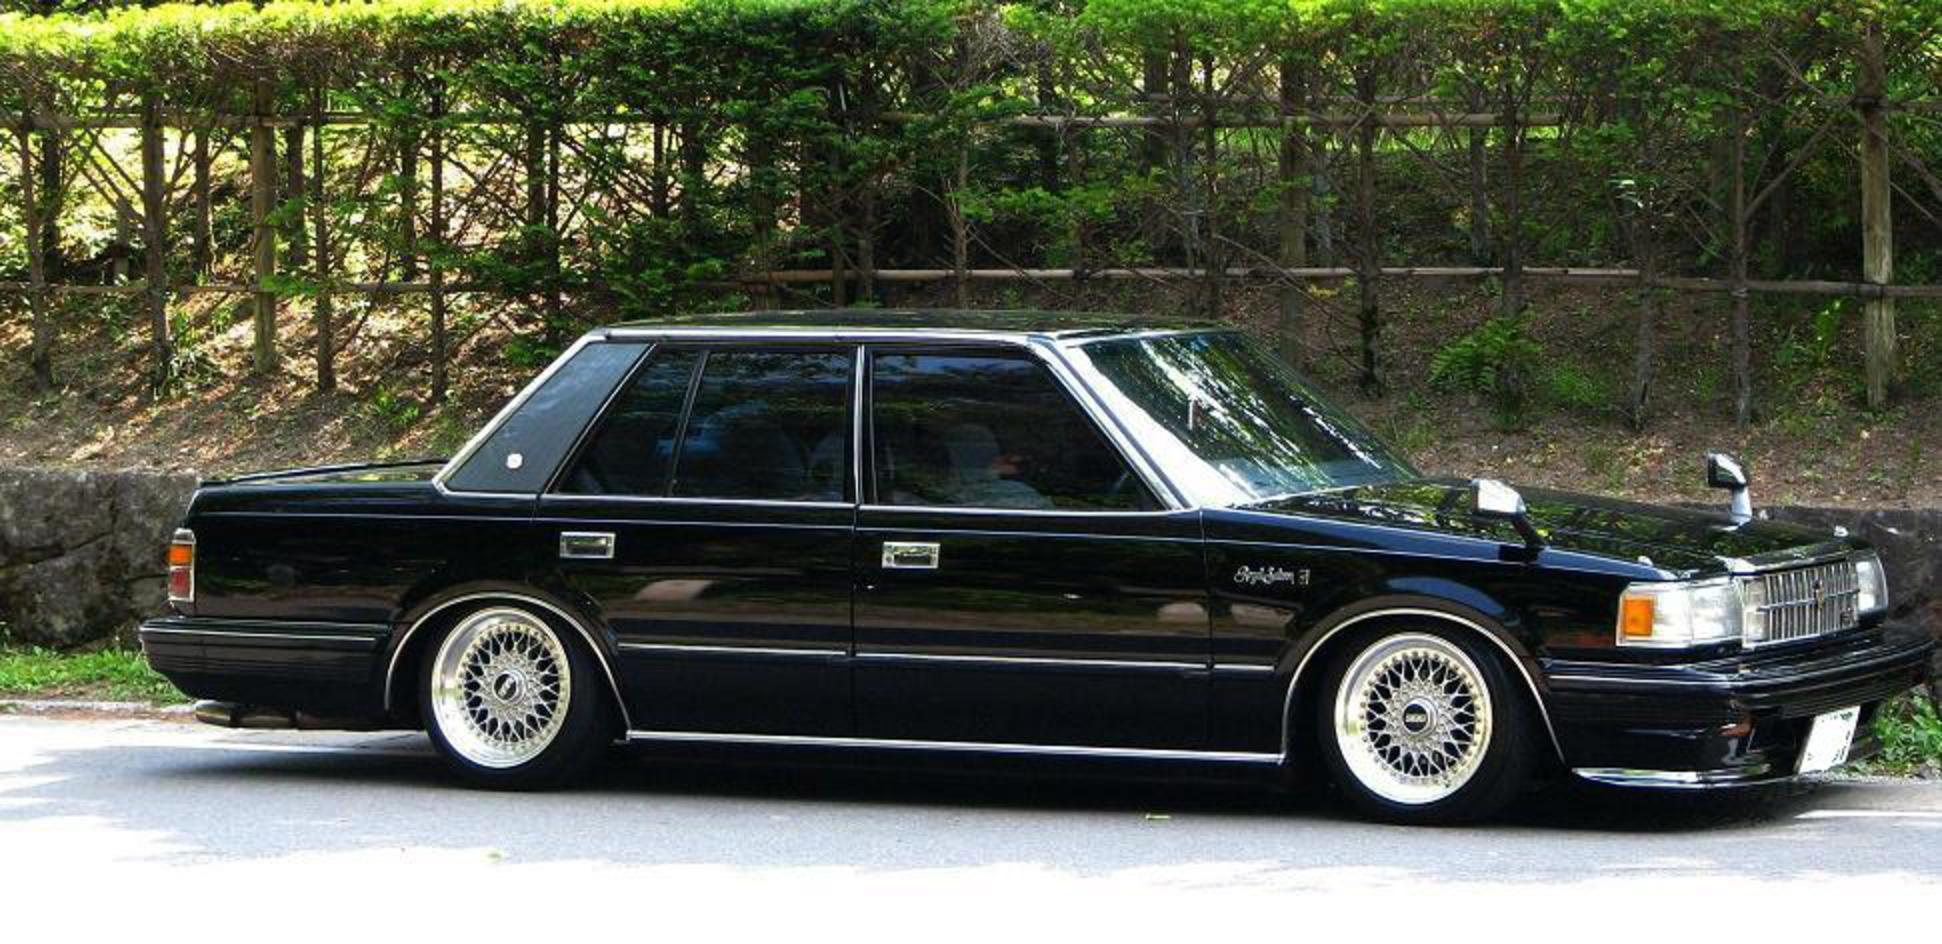 Toyota Crown jdm